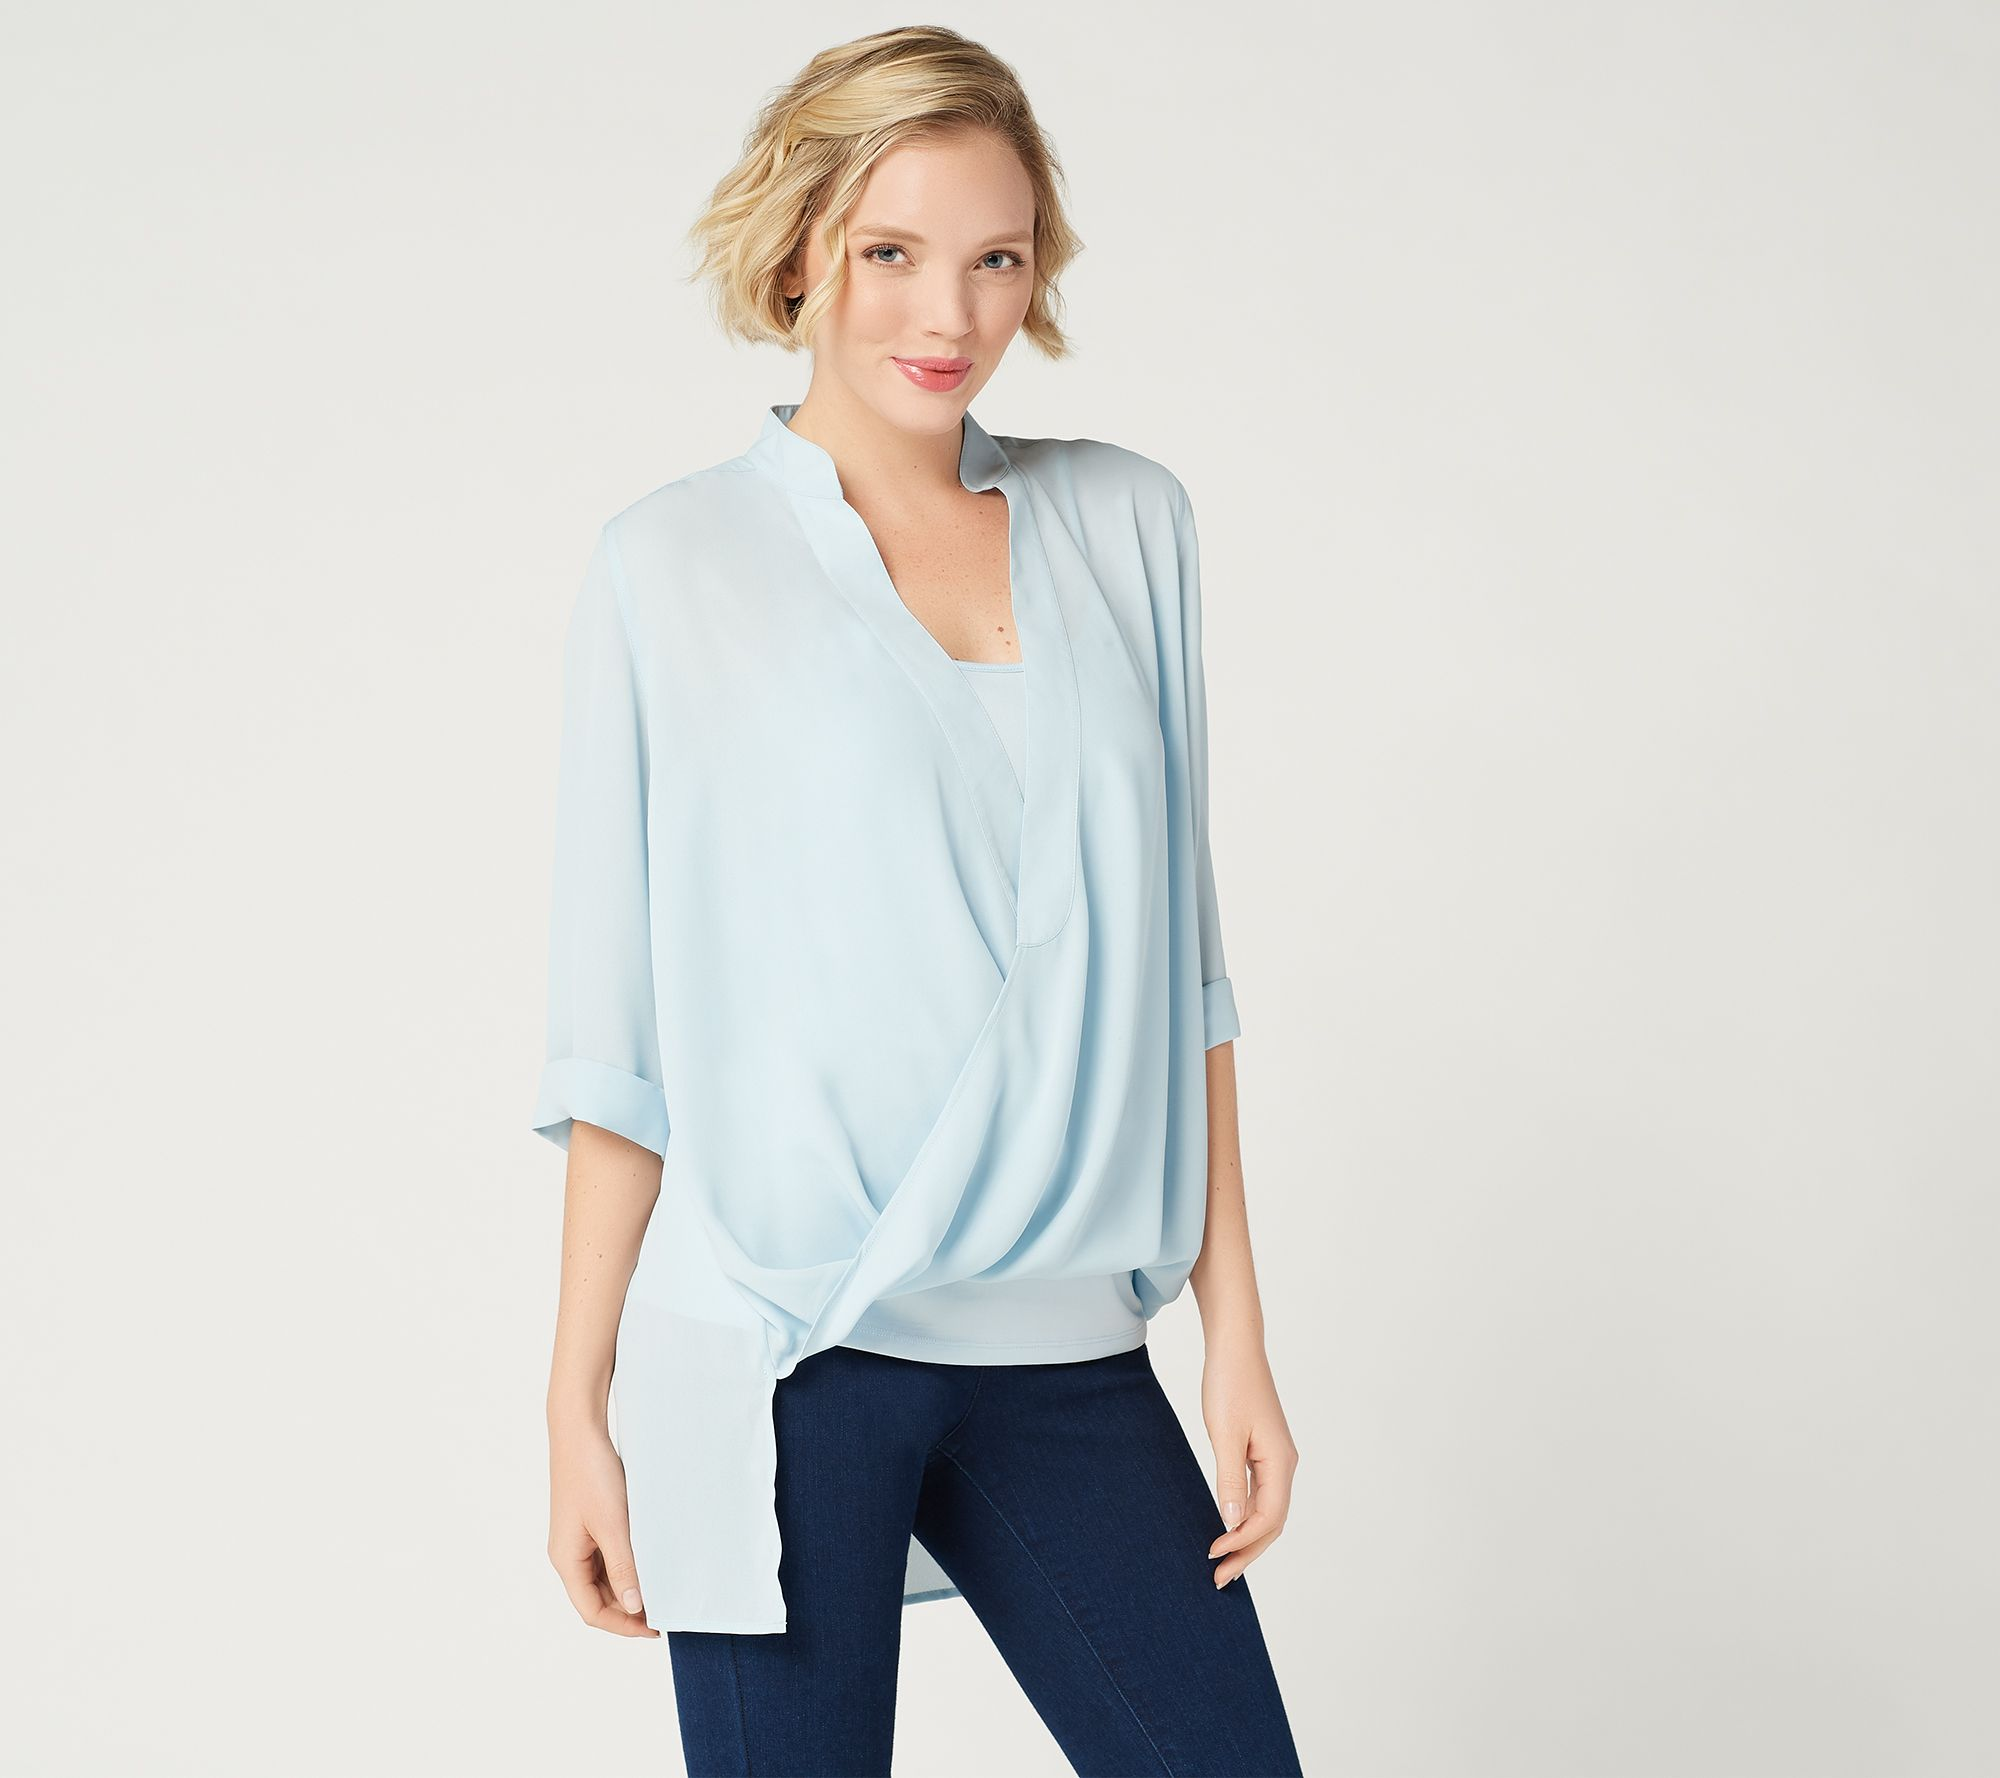 3aaf1882713a7 Lisa Rinna Collection Twist Front Top with Camisole - Page 1 — QVC.com